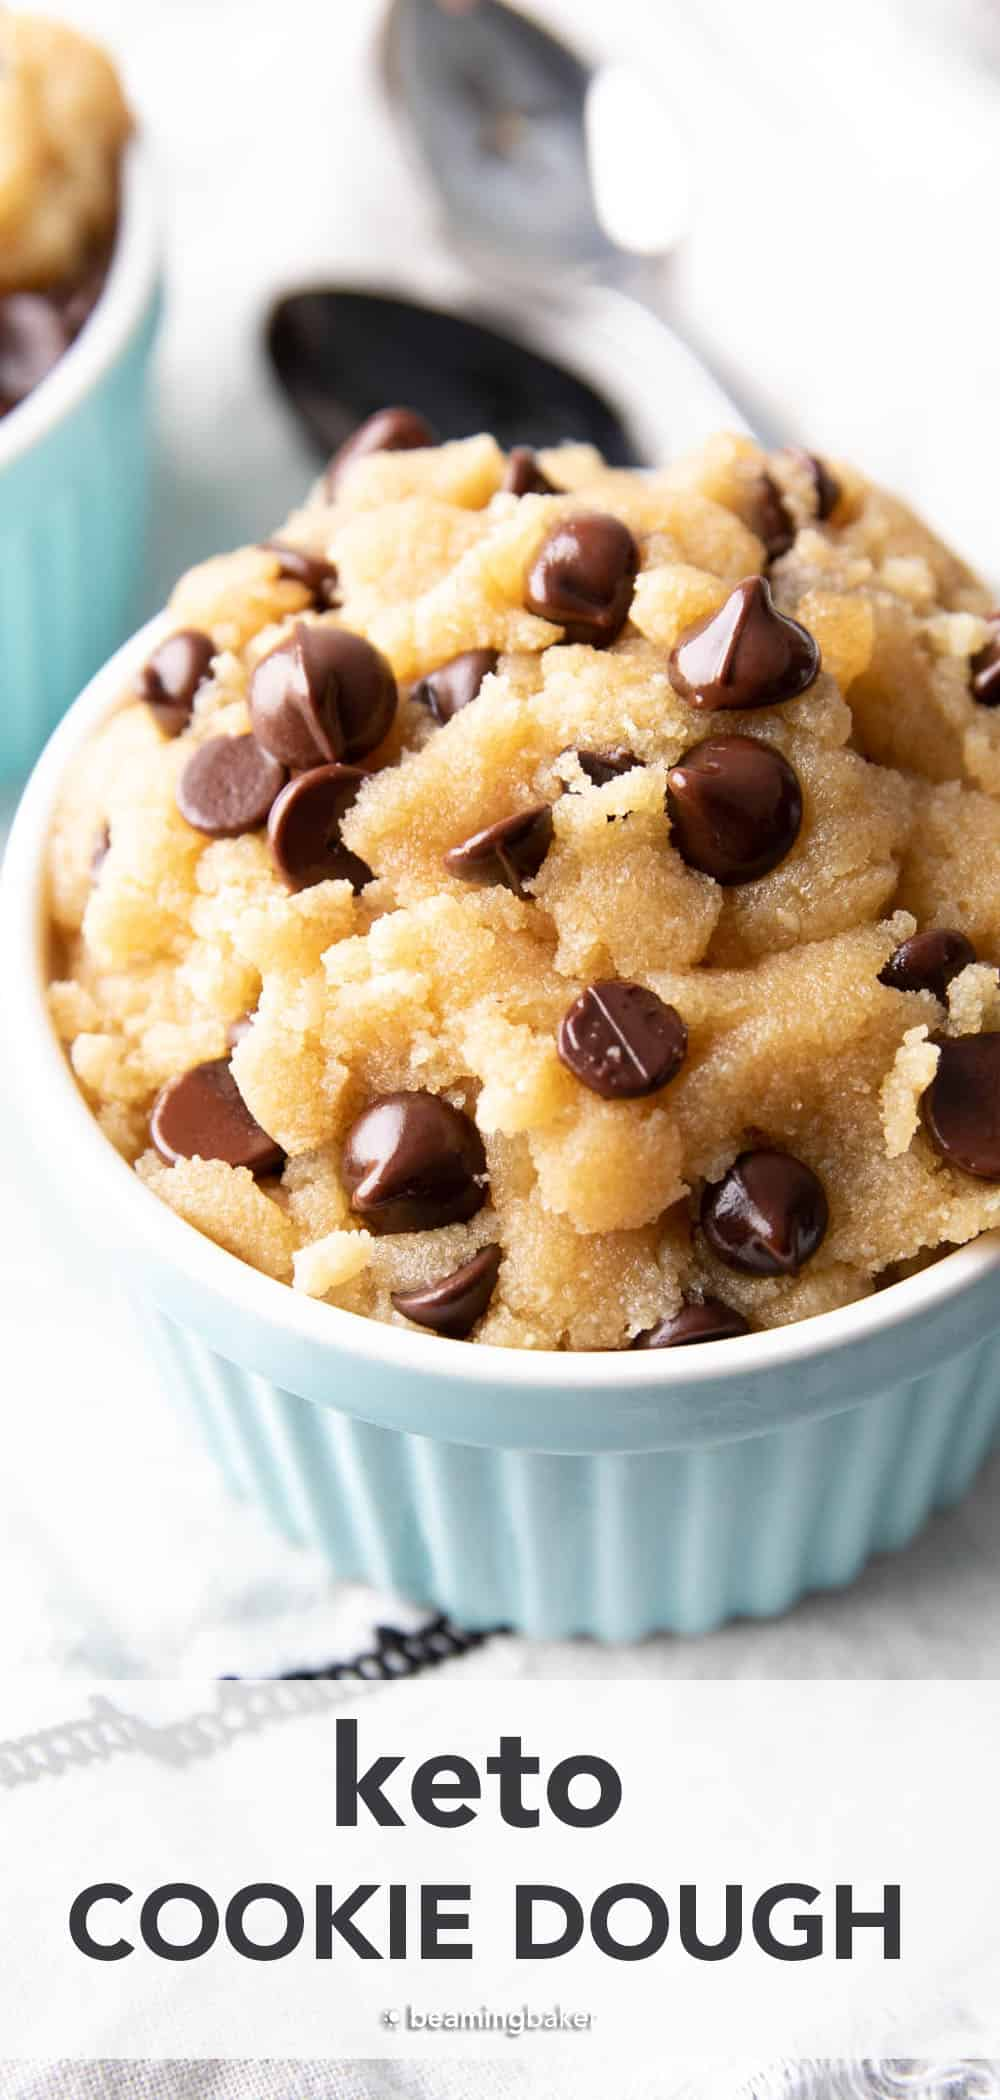 Keto Cookie Dough Recipe: indulgently sweet 'n satisfying keto cookie dough that's deliciously low carb! Super easy to make & even easier to eat! #Keto #CookieDough #LowCarb | Recipe at BeamingBaker.com